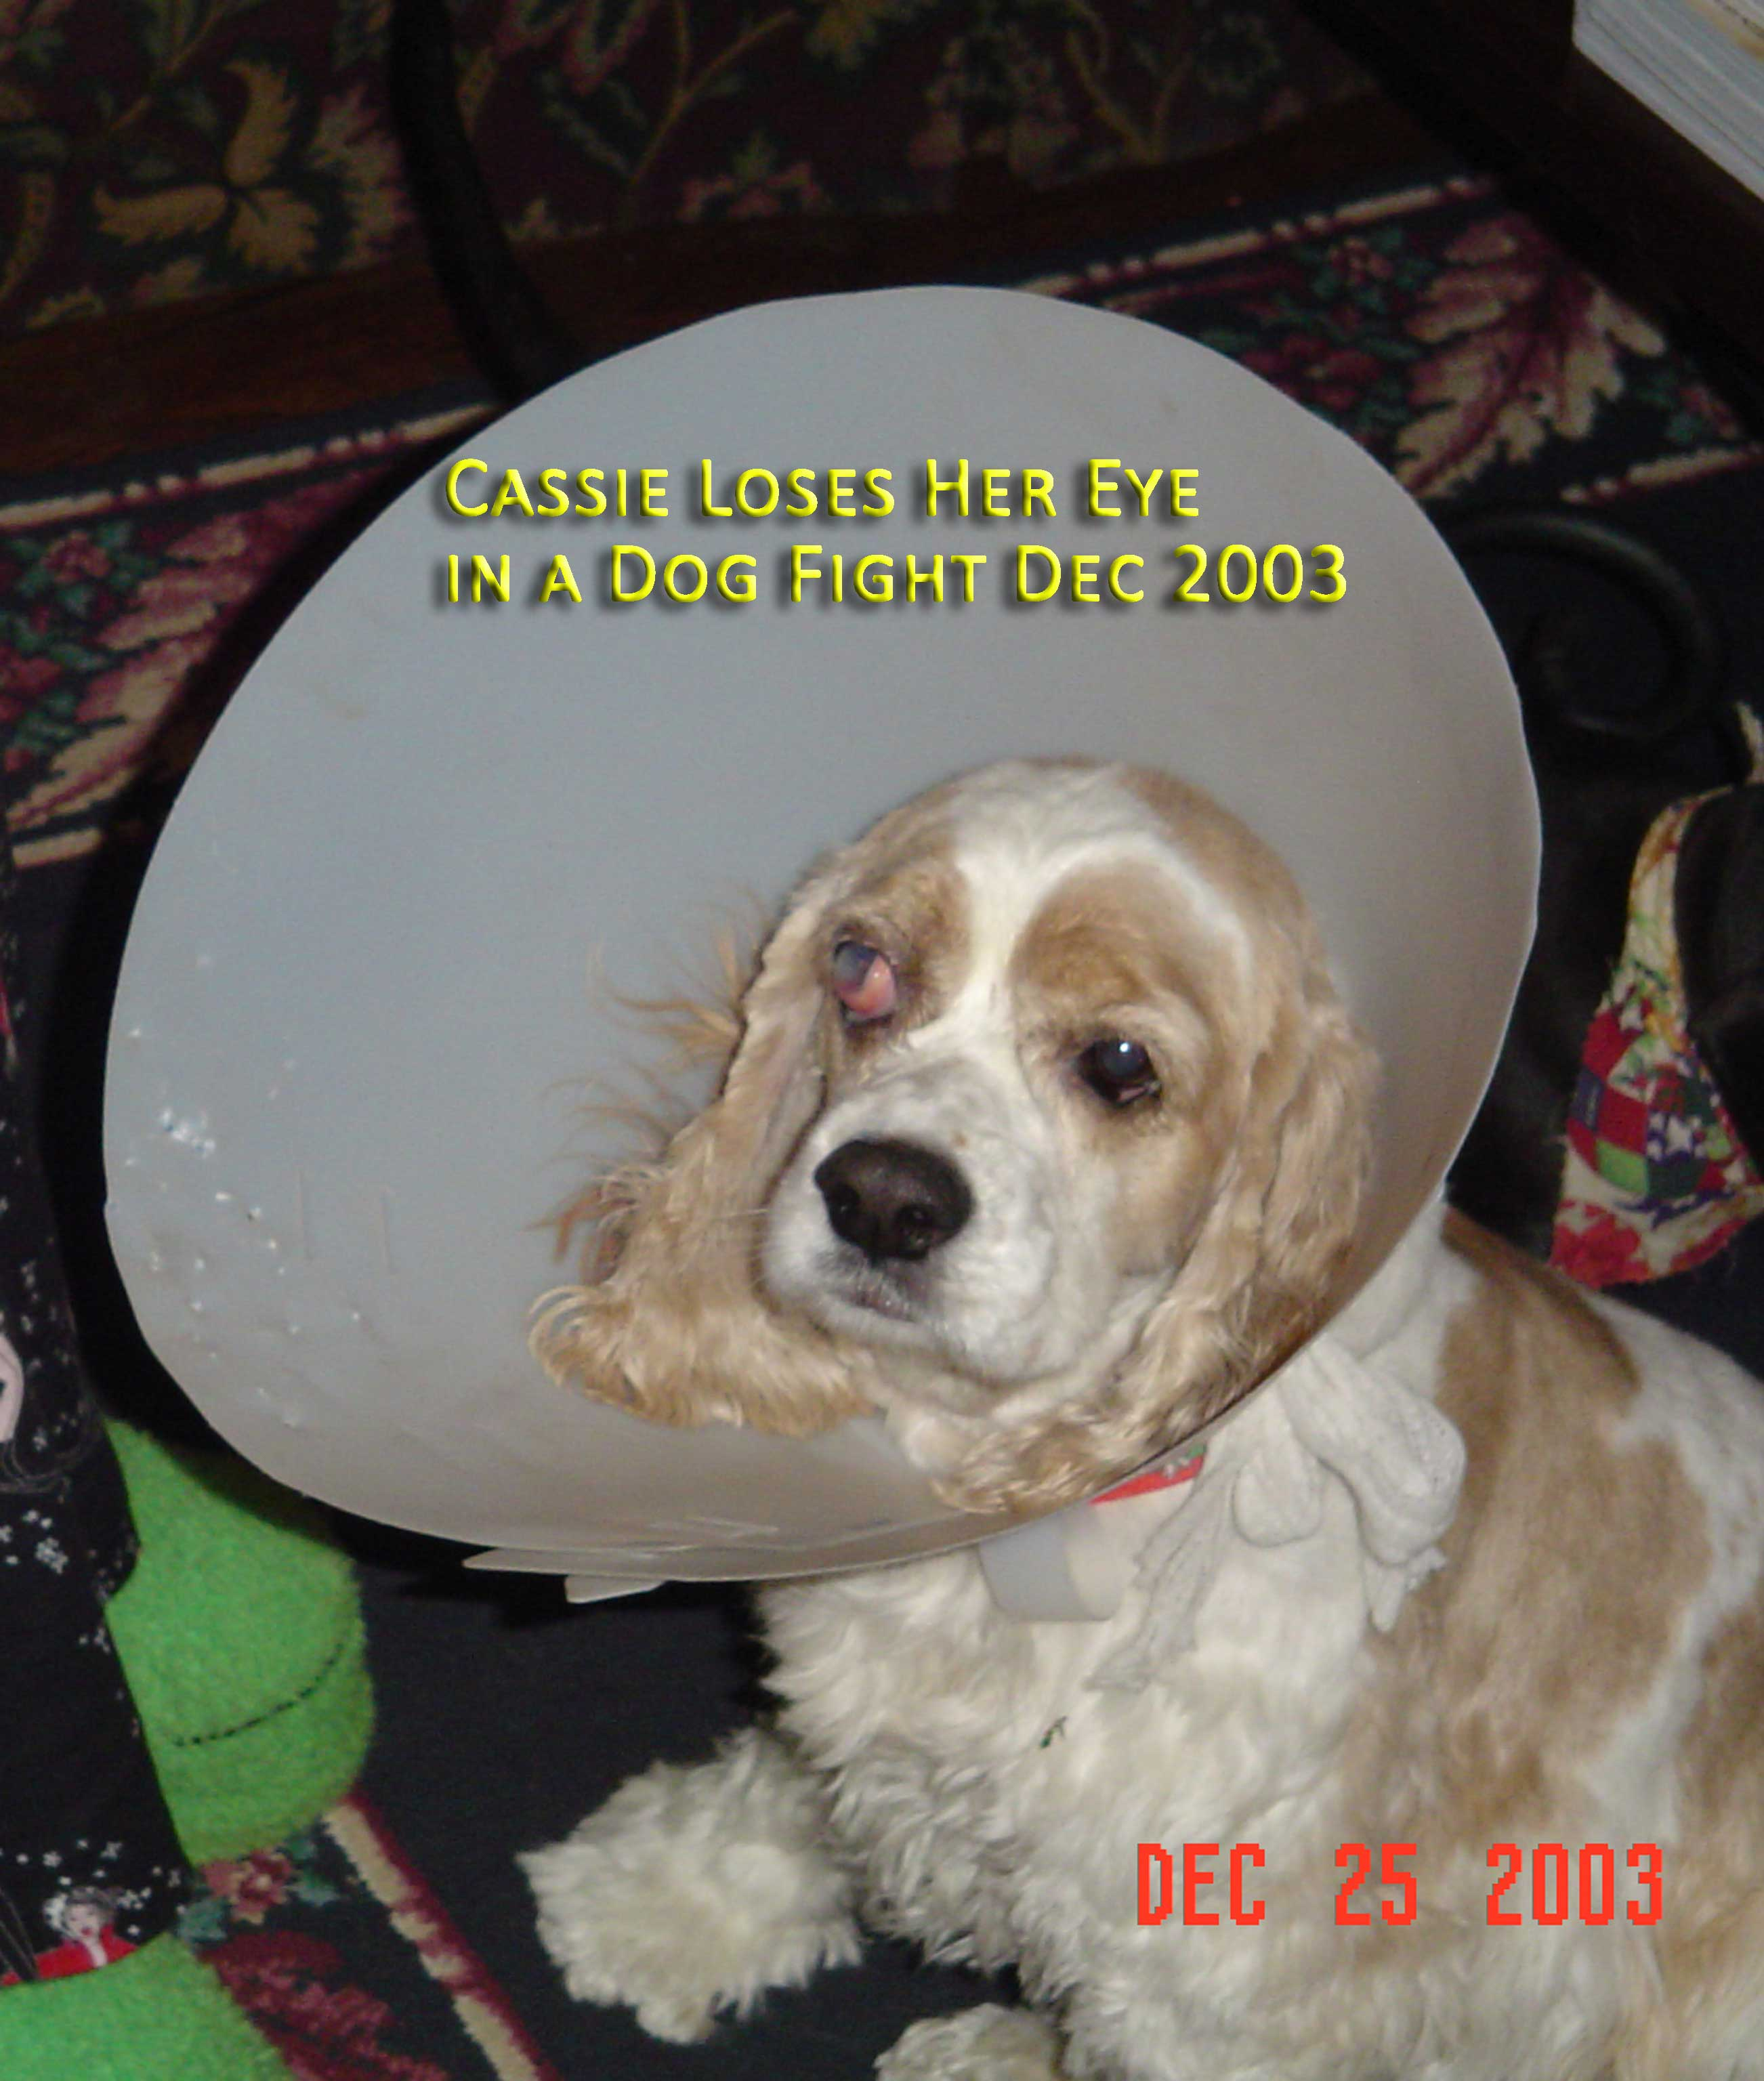 Cassie loses an eye